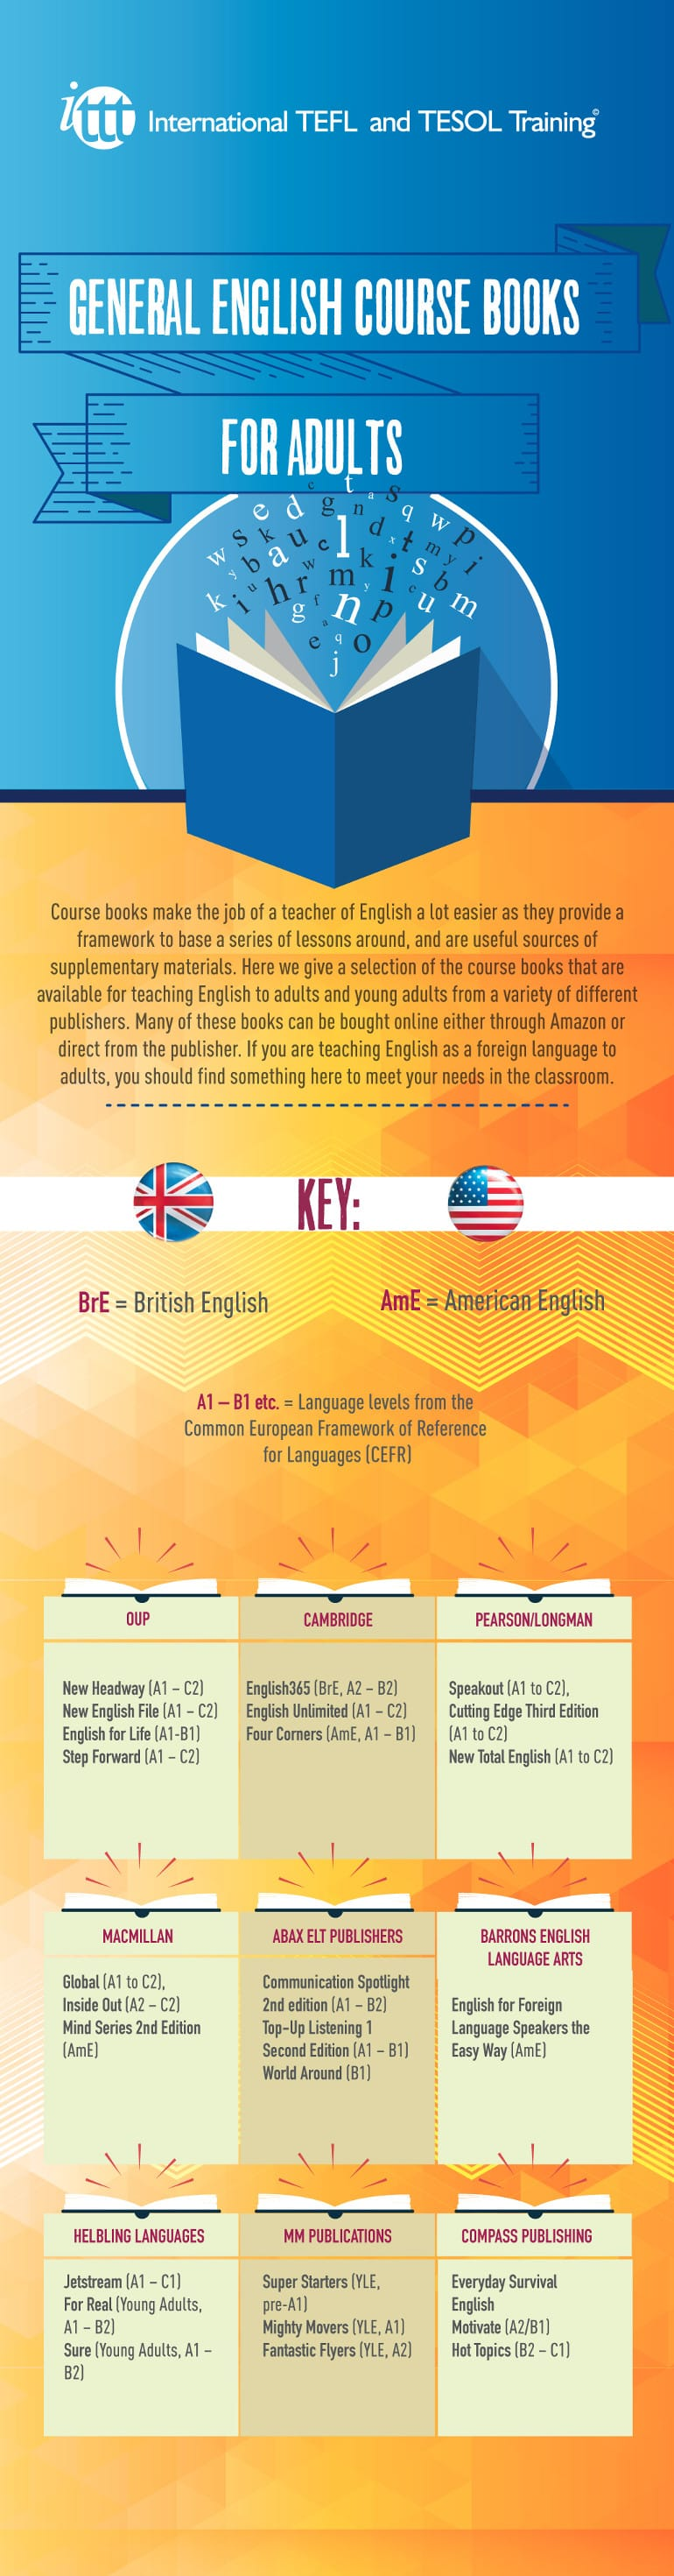 General English Course Books for Adults